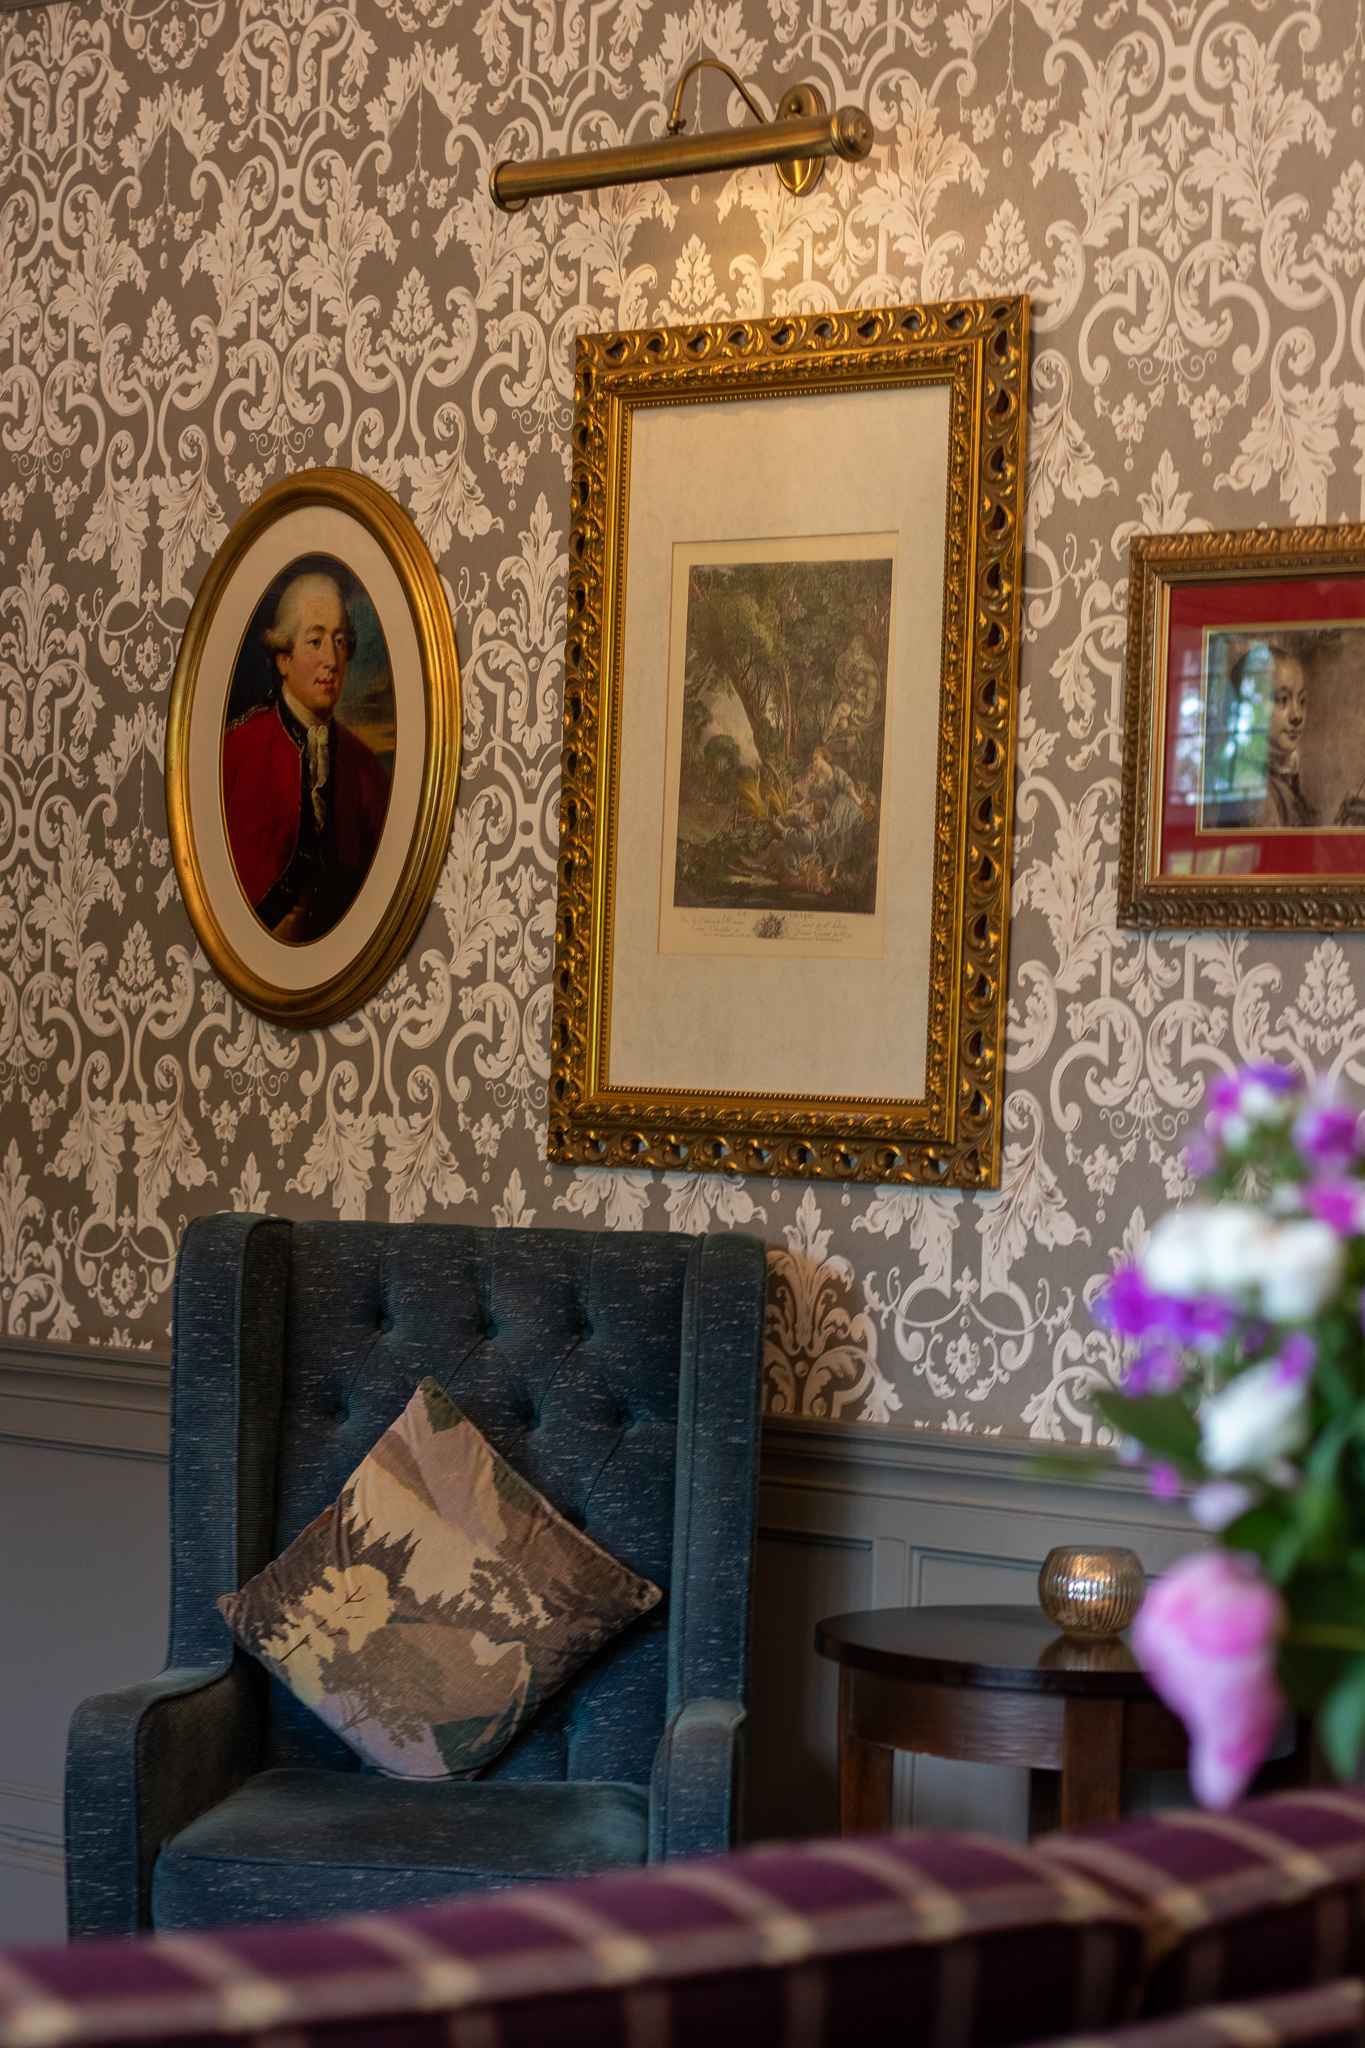 IMG 9166 - Redworth Hall: Overnight Spa Weekend Review